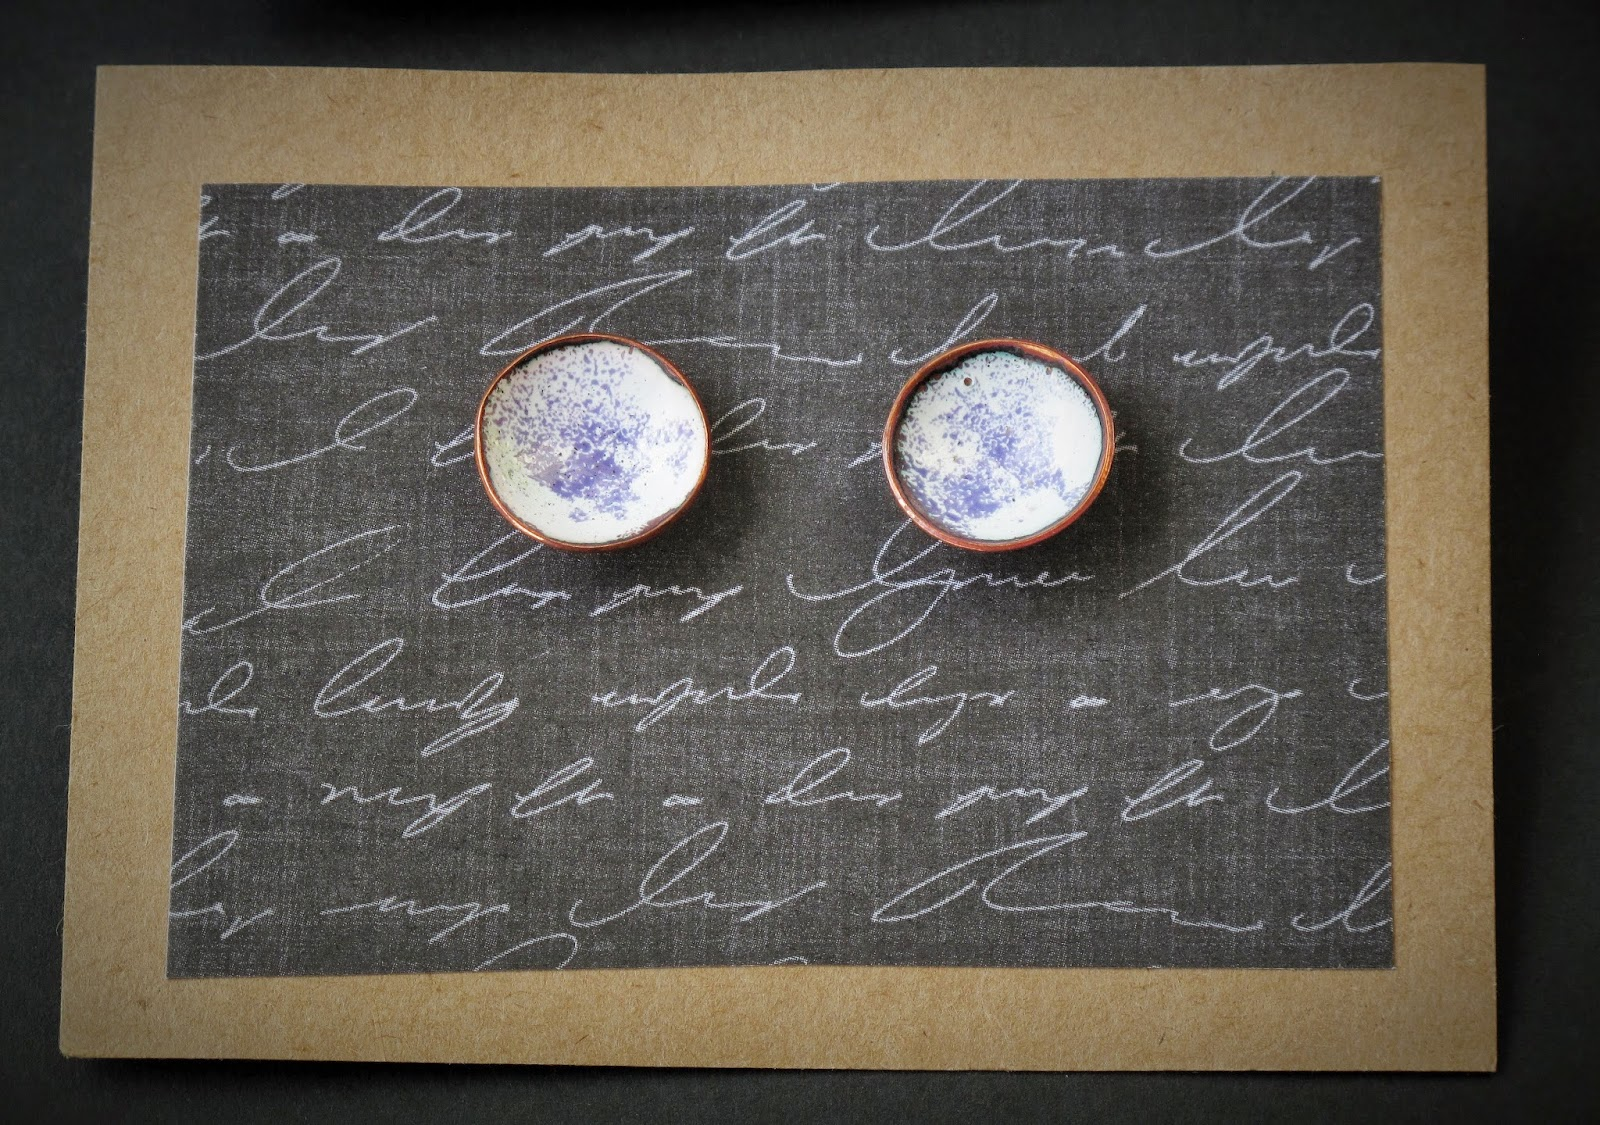 https://www.etsy.com/listing/232548725/enamel-copper-cup-stud-earrings?ref=shop_home_active_1